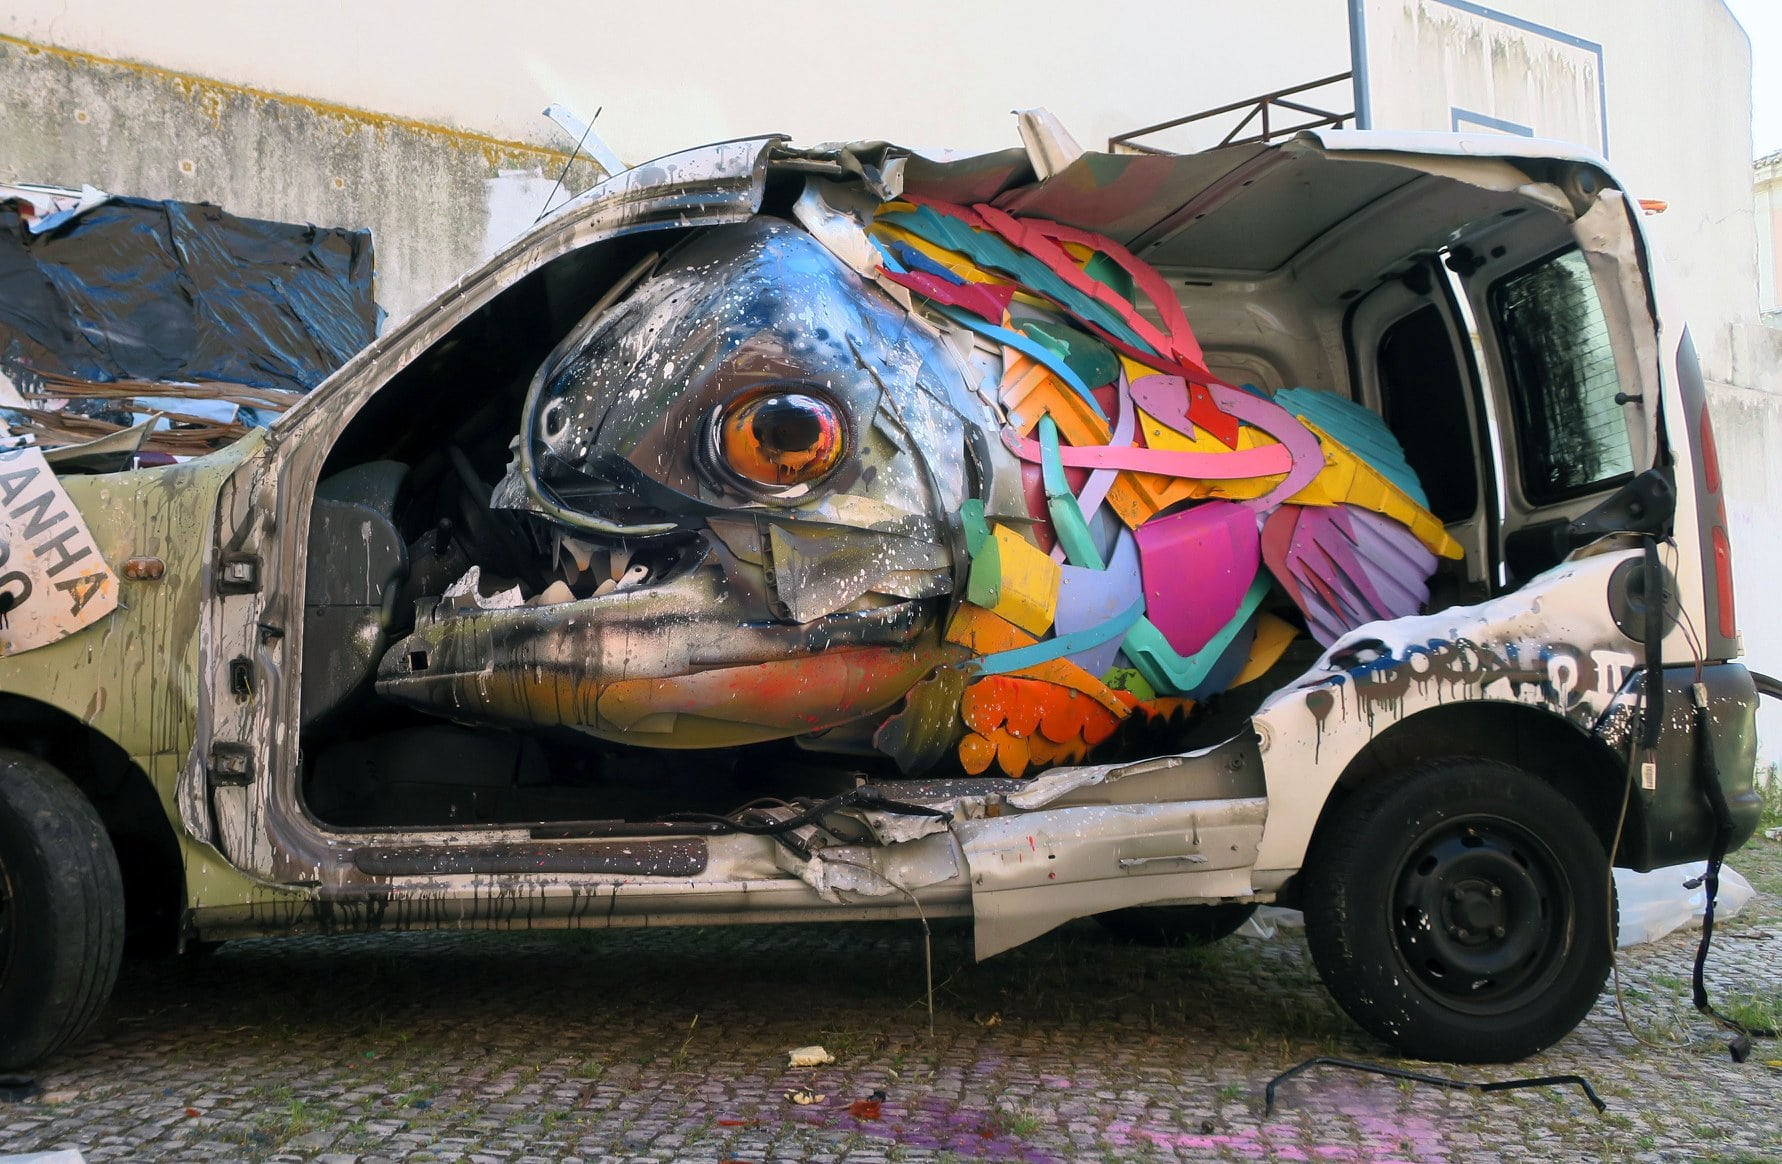 Trash animal - Bordalo II